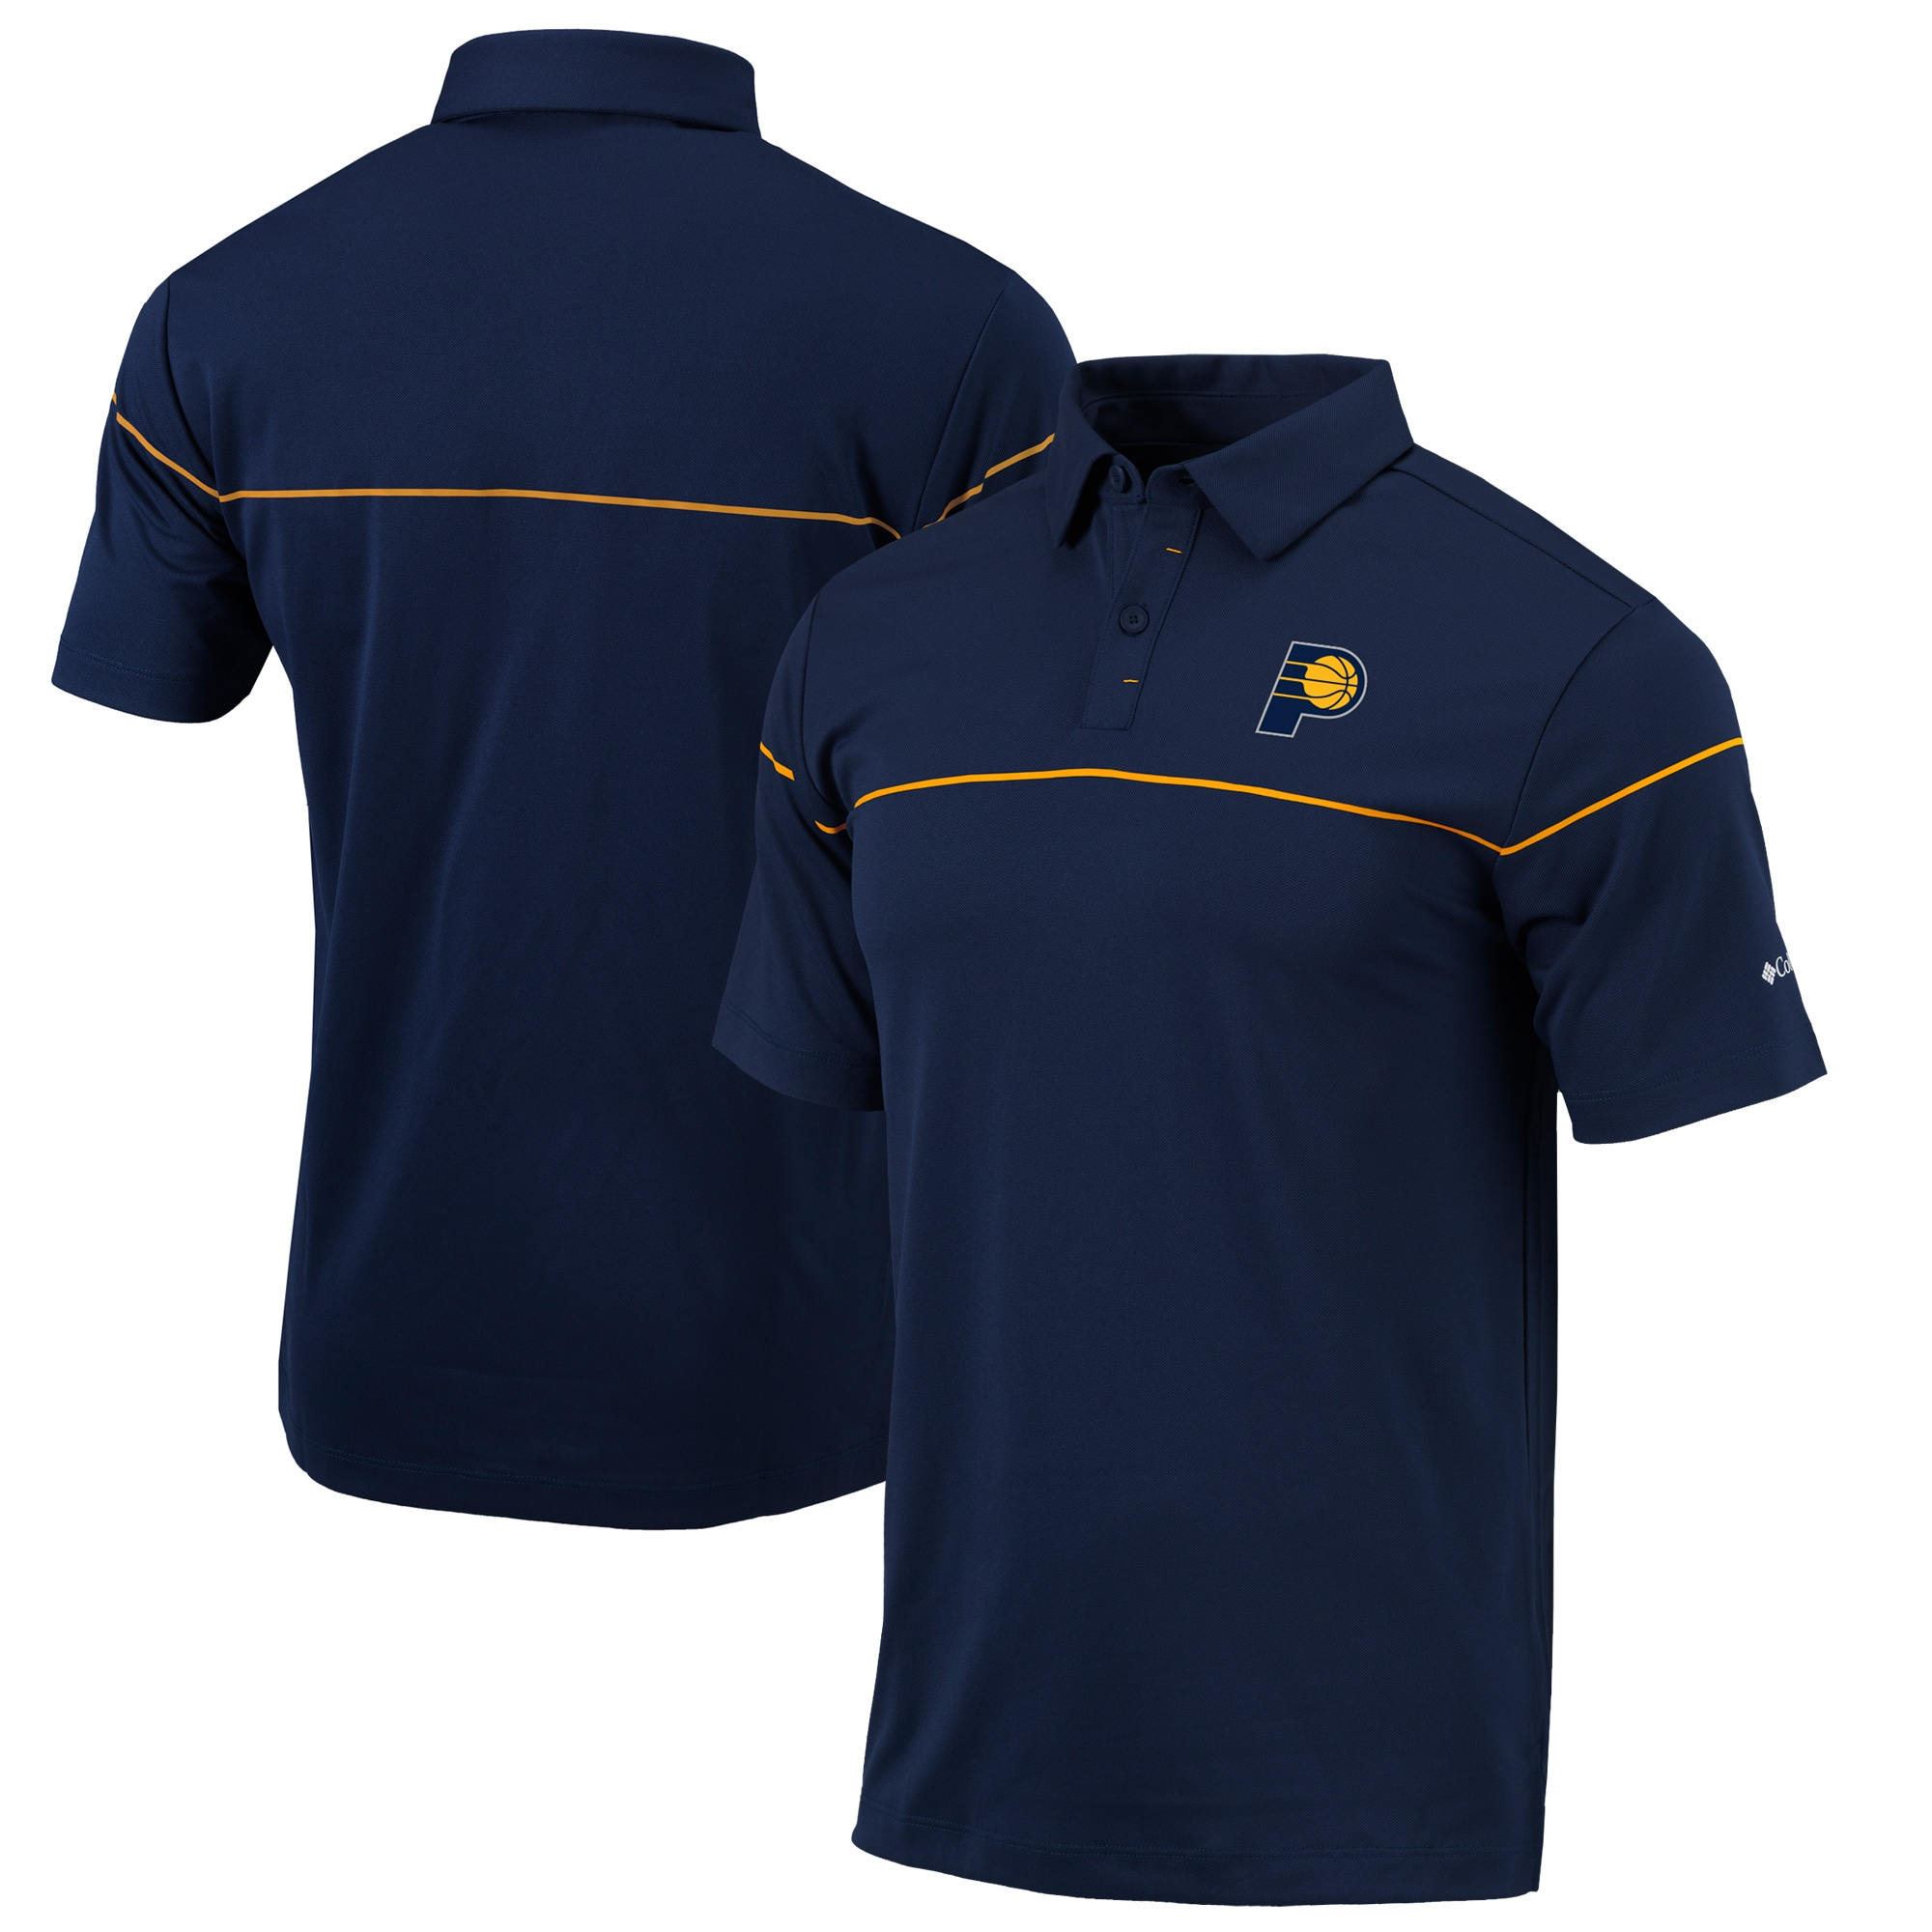 Indiana Pacers Columbia Omni-Wick Breaker Polo - Navy/Gold